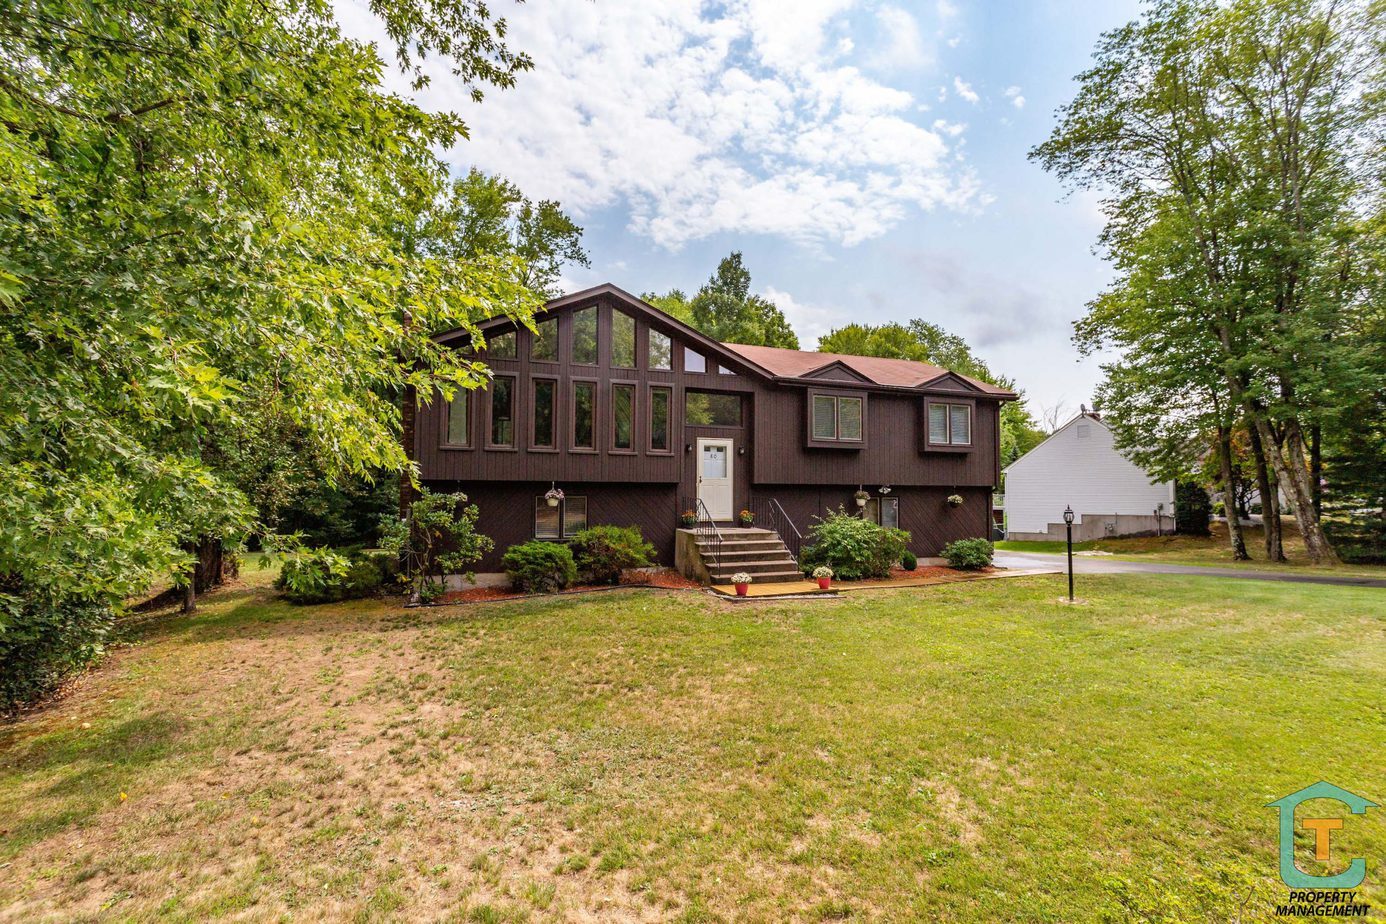 Home for rent in Windsor CT